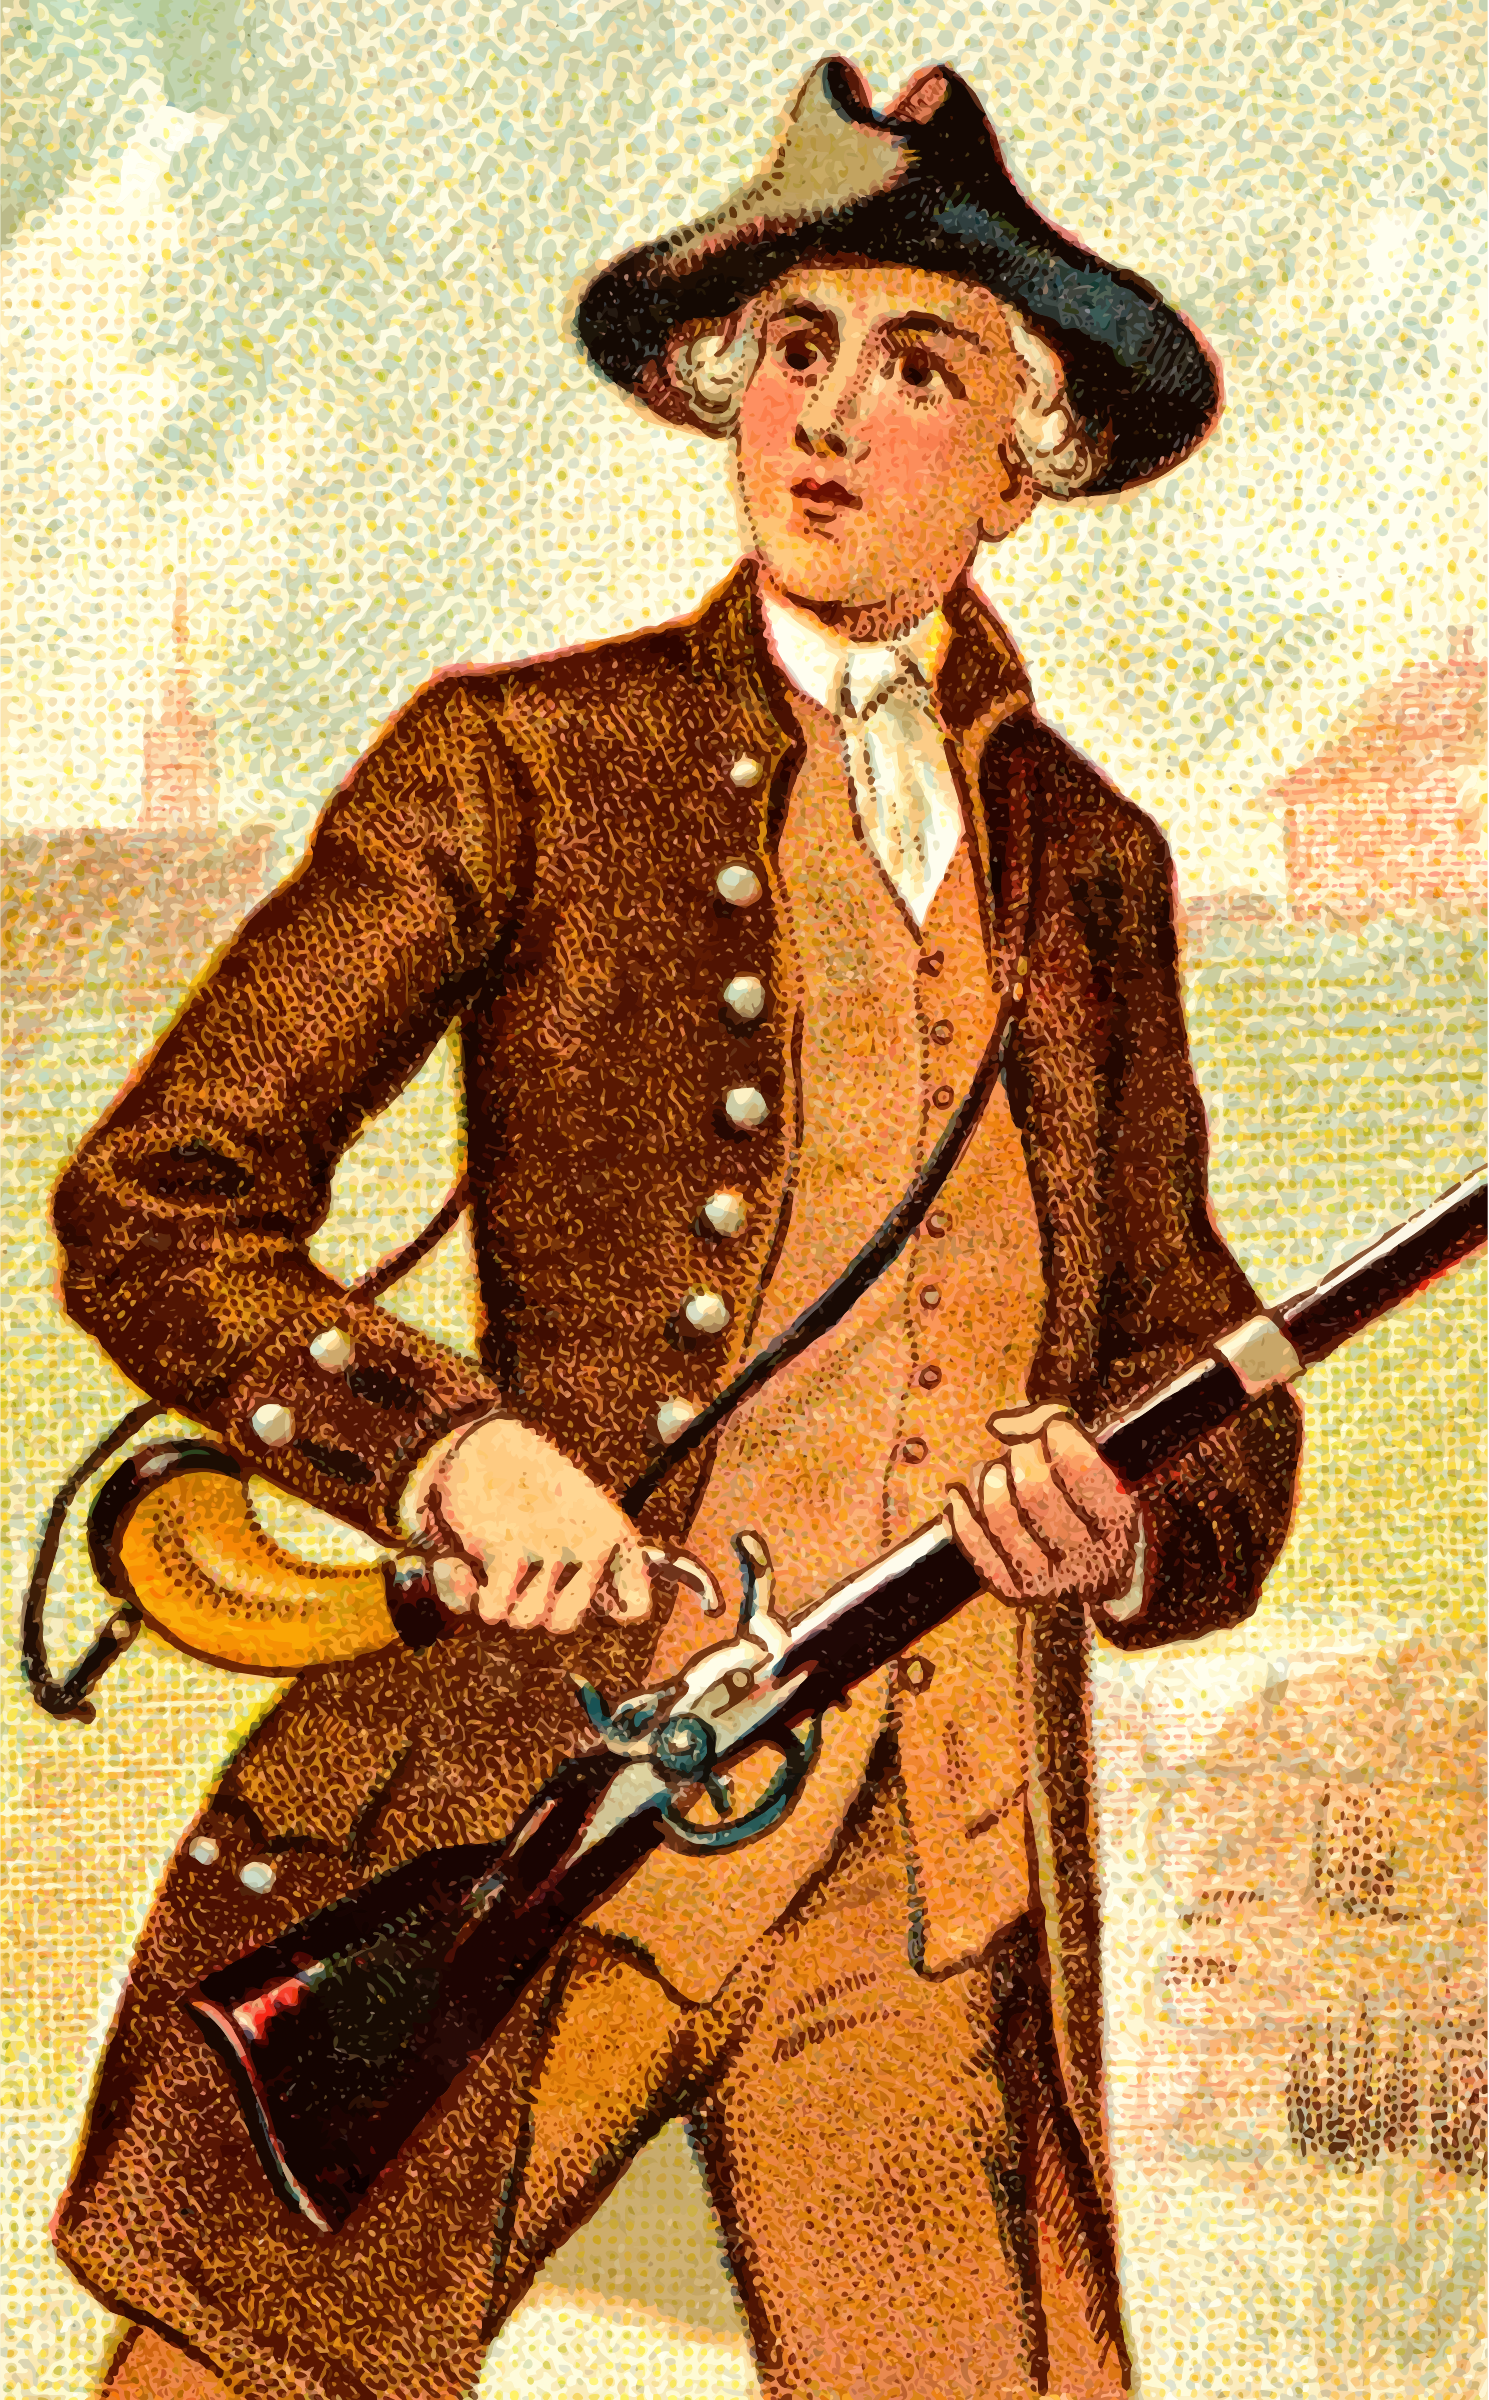 Cigarette card - Flint Lock Musket by Firkin